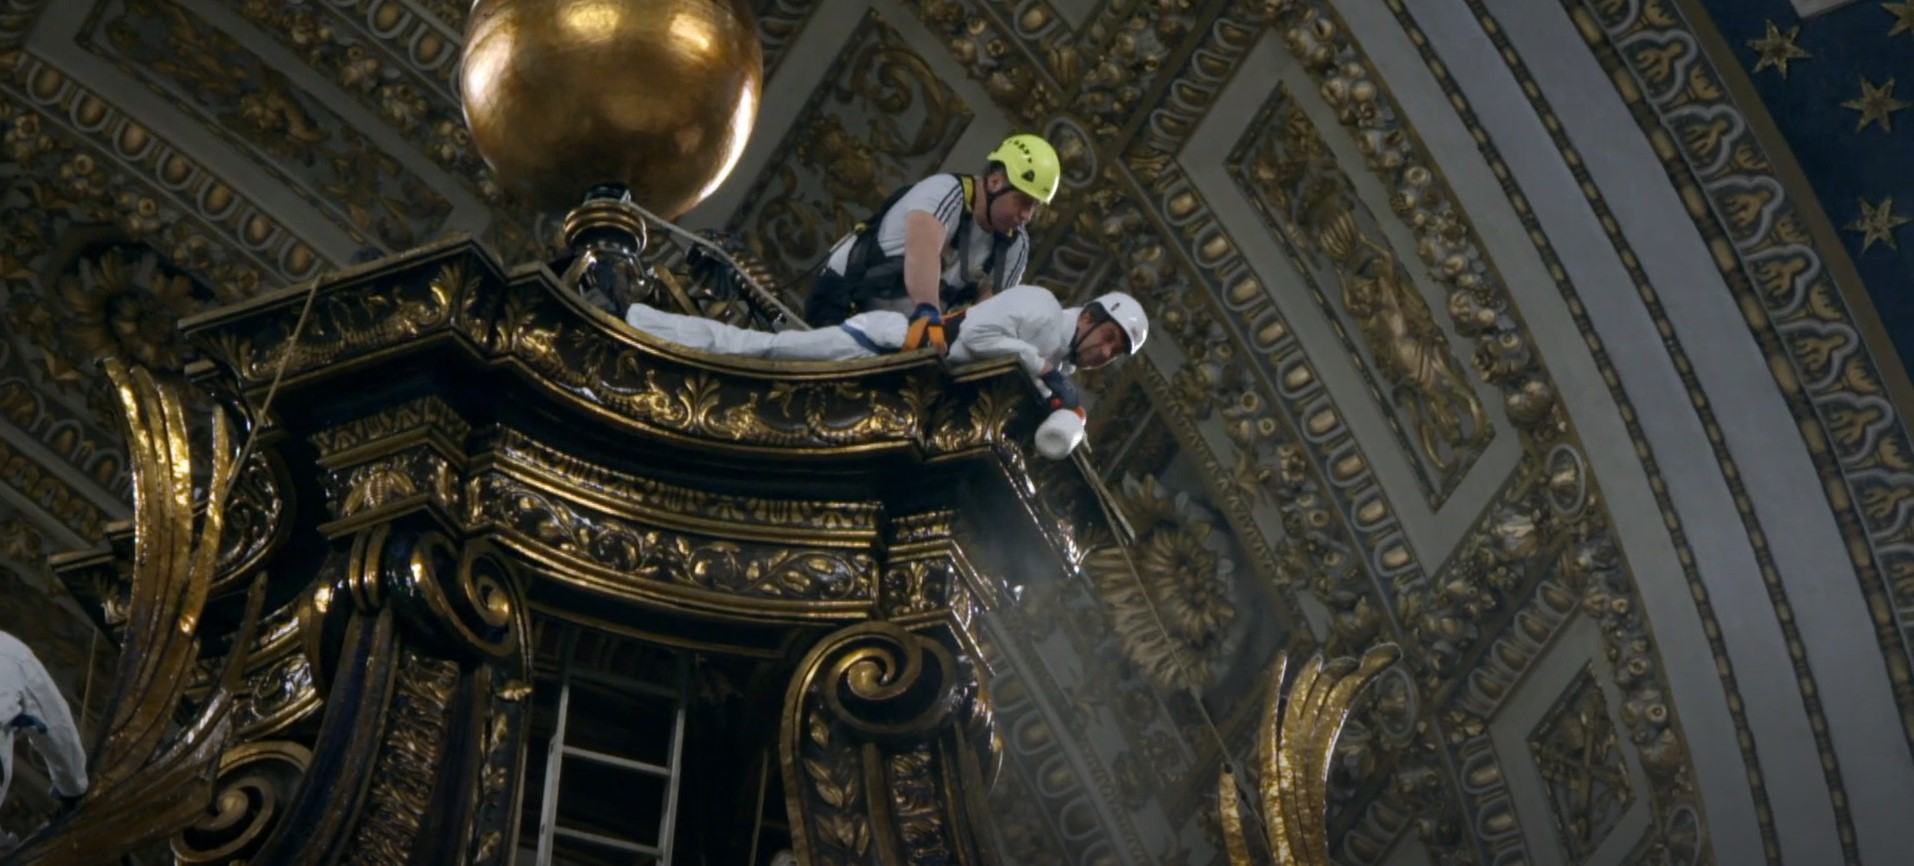 What goes on inside the Vatican walls?